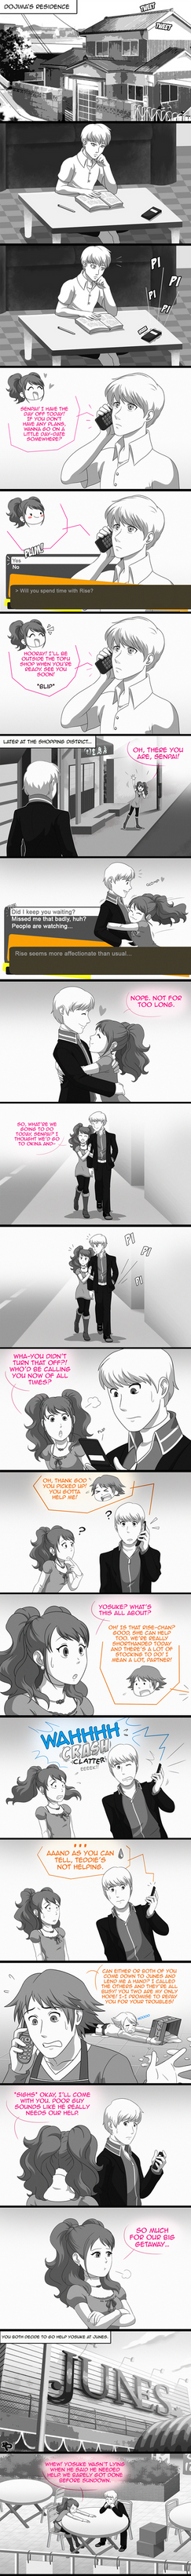 Persona 4: Signs of Love (Rise's story pt.1)